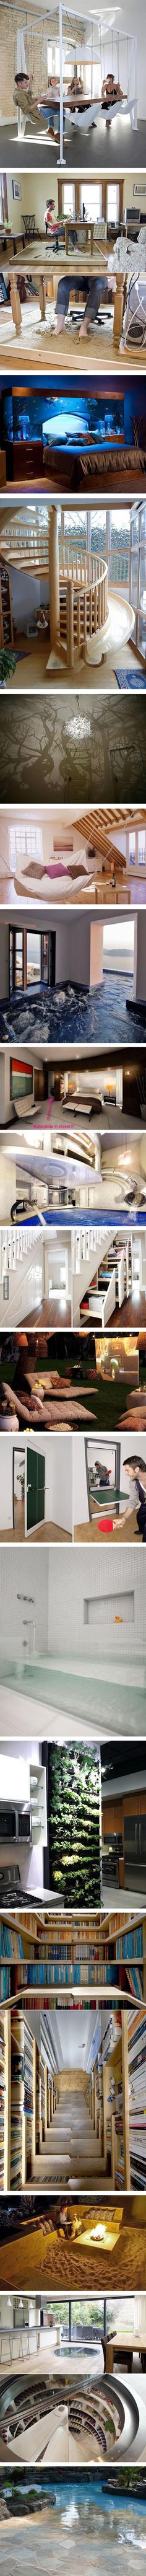 Waterslide in closet is an interesting use of space.   Spiral staircase with slide - outside!